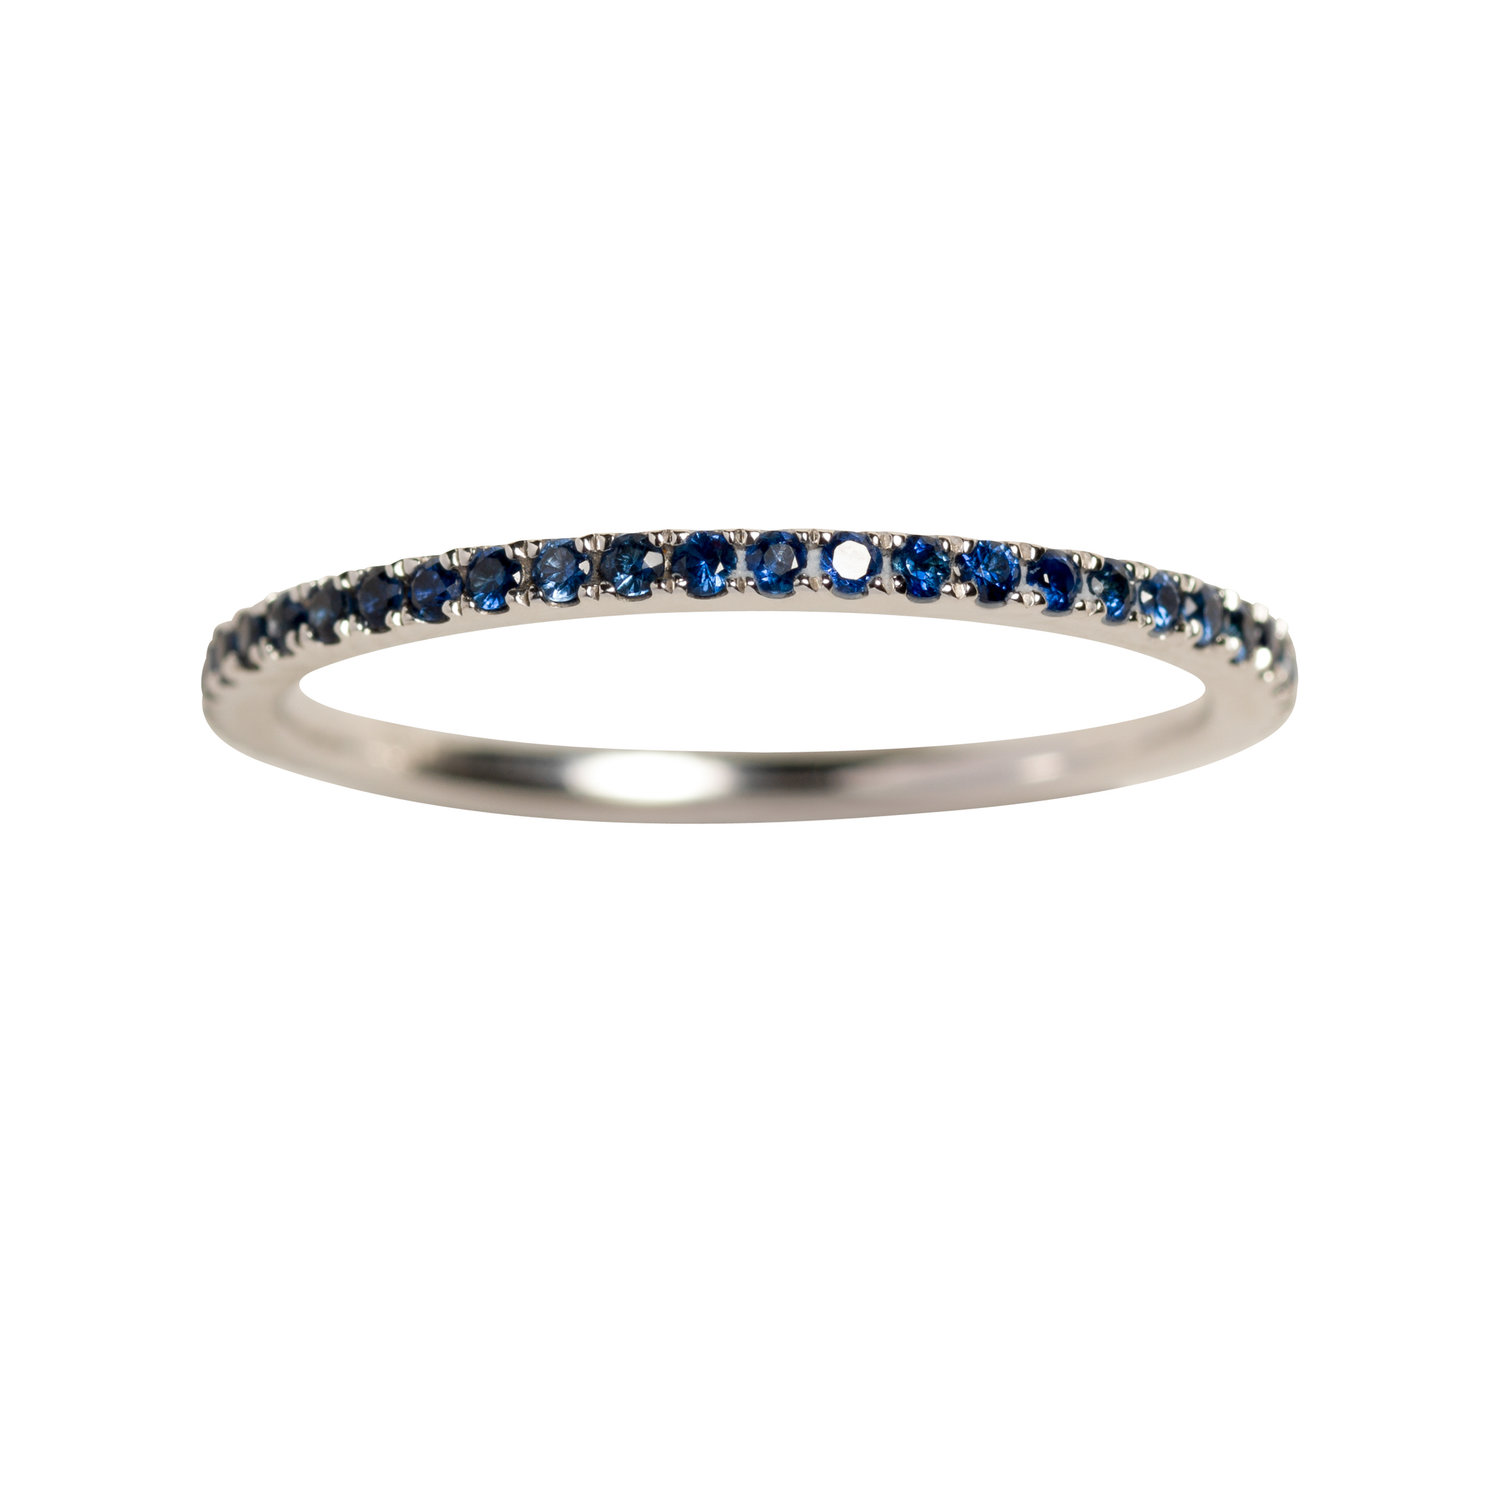 PETIT OLIVIA RING 16.000 NOK. 18 kt gold with blue sapphires